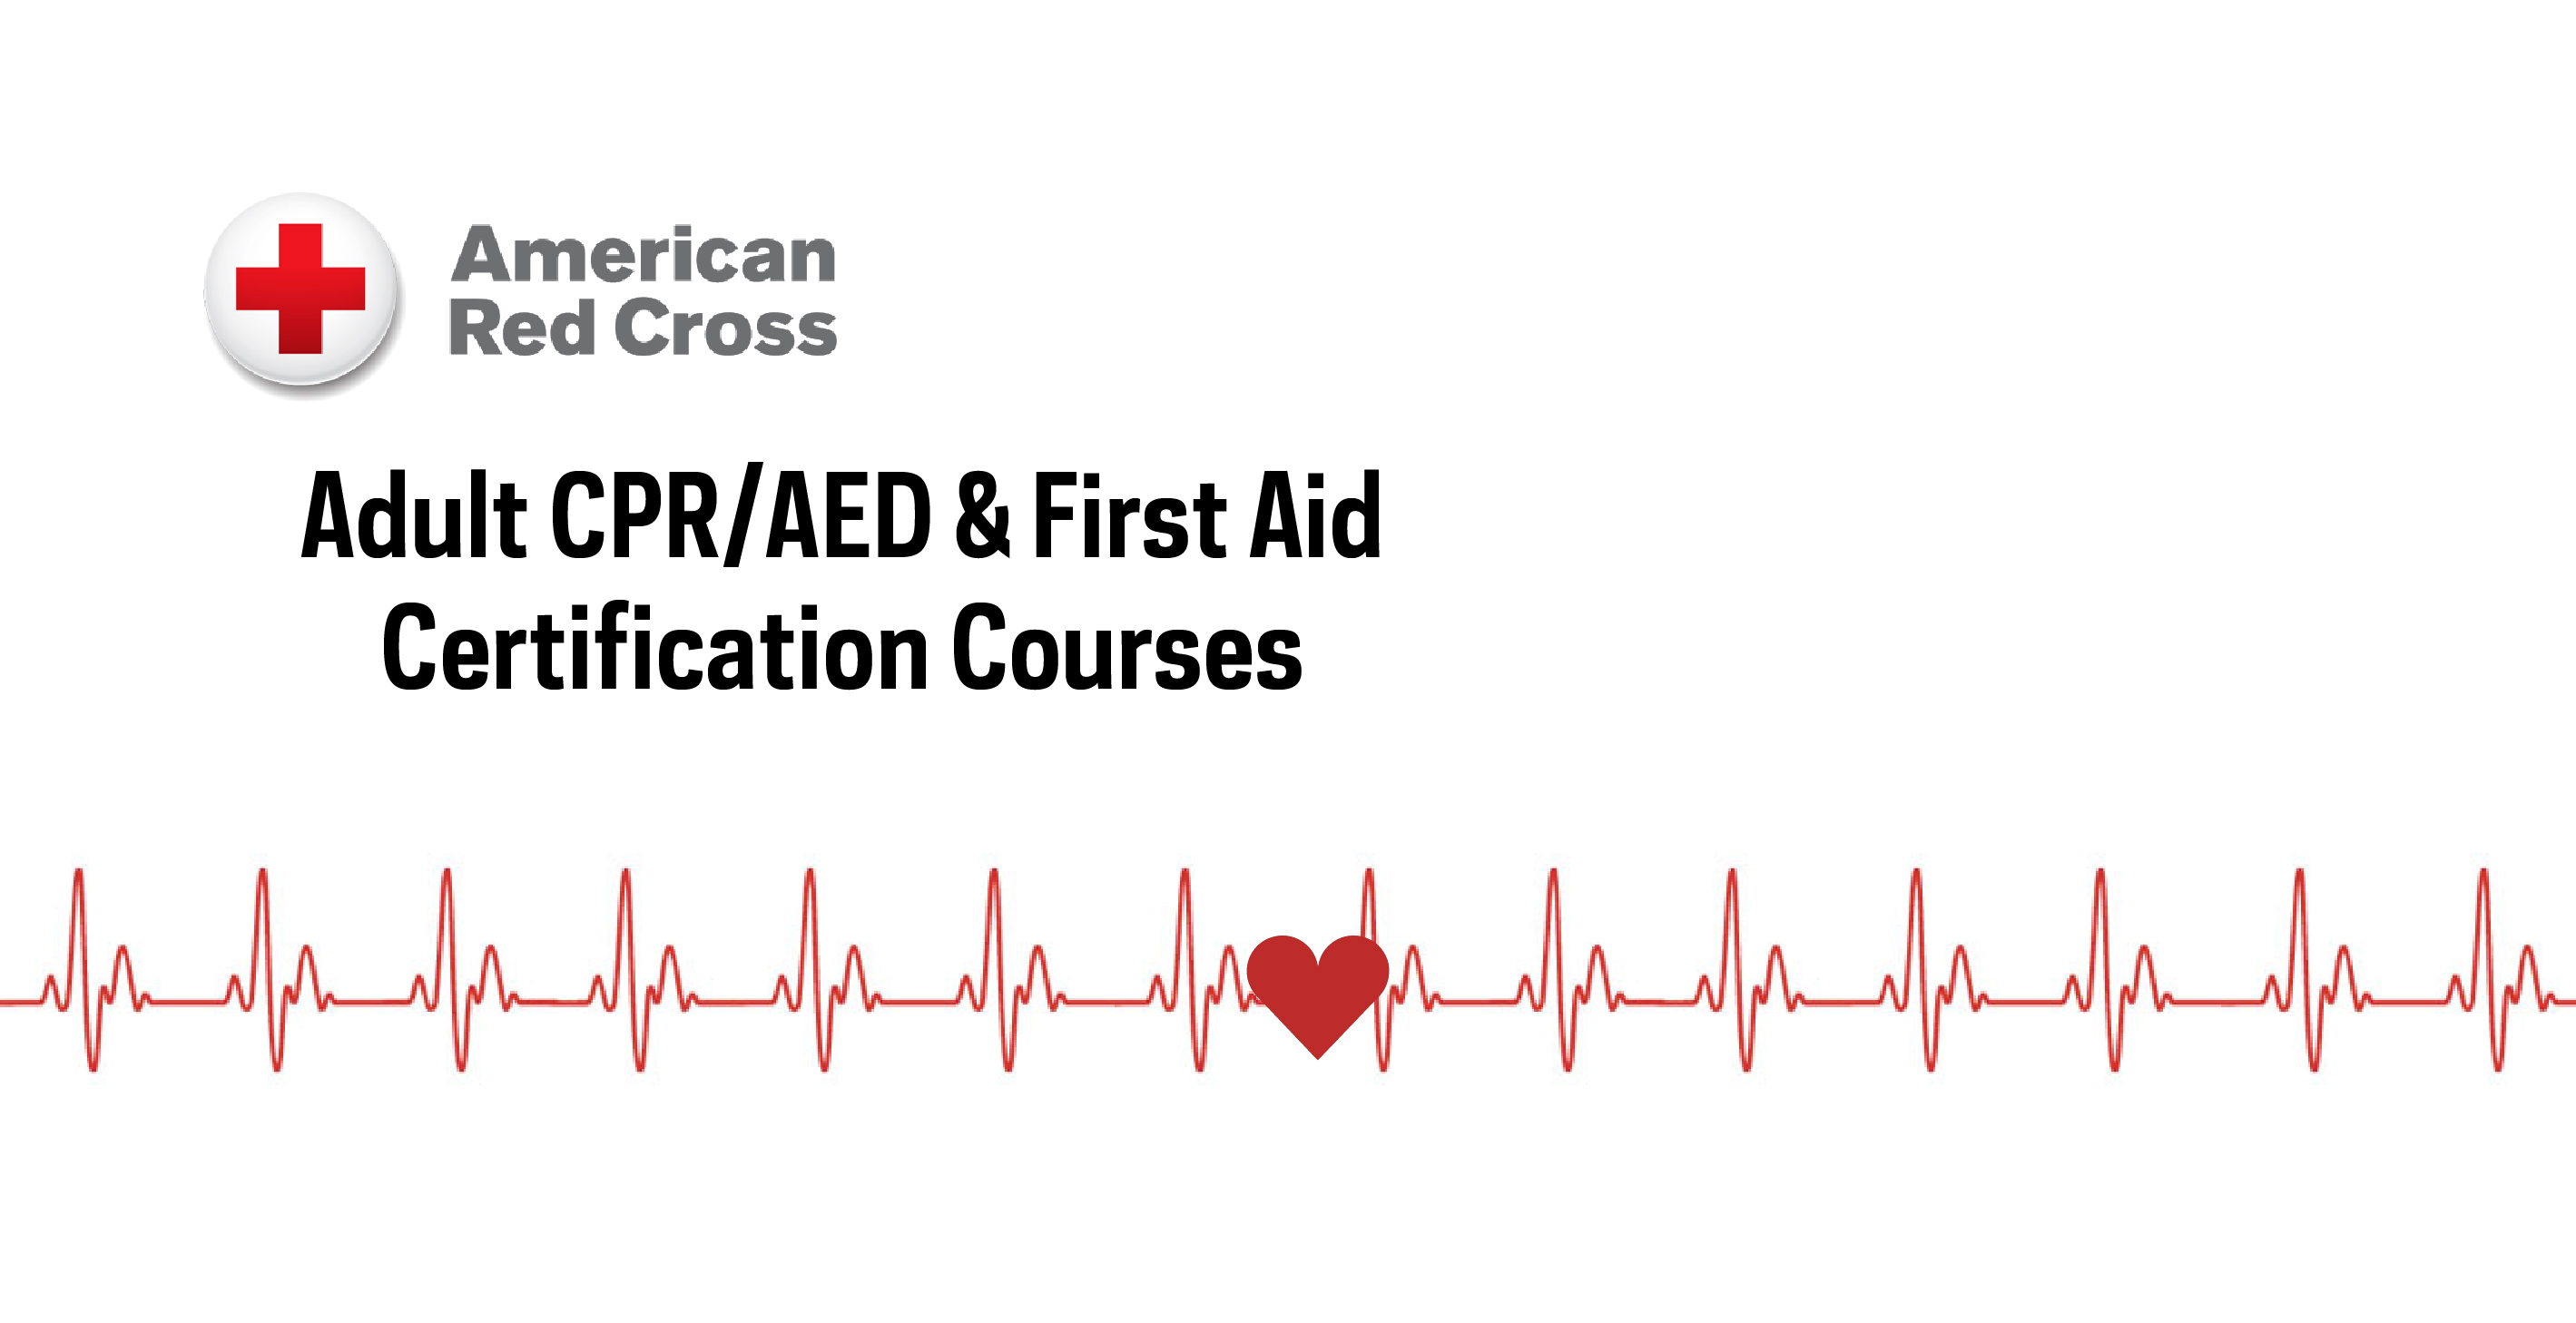 Register now for Adult CPR/AED & First Aid courses